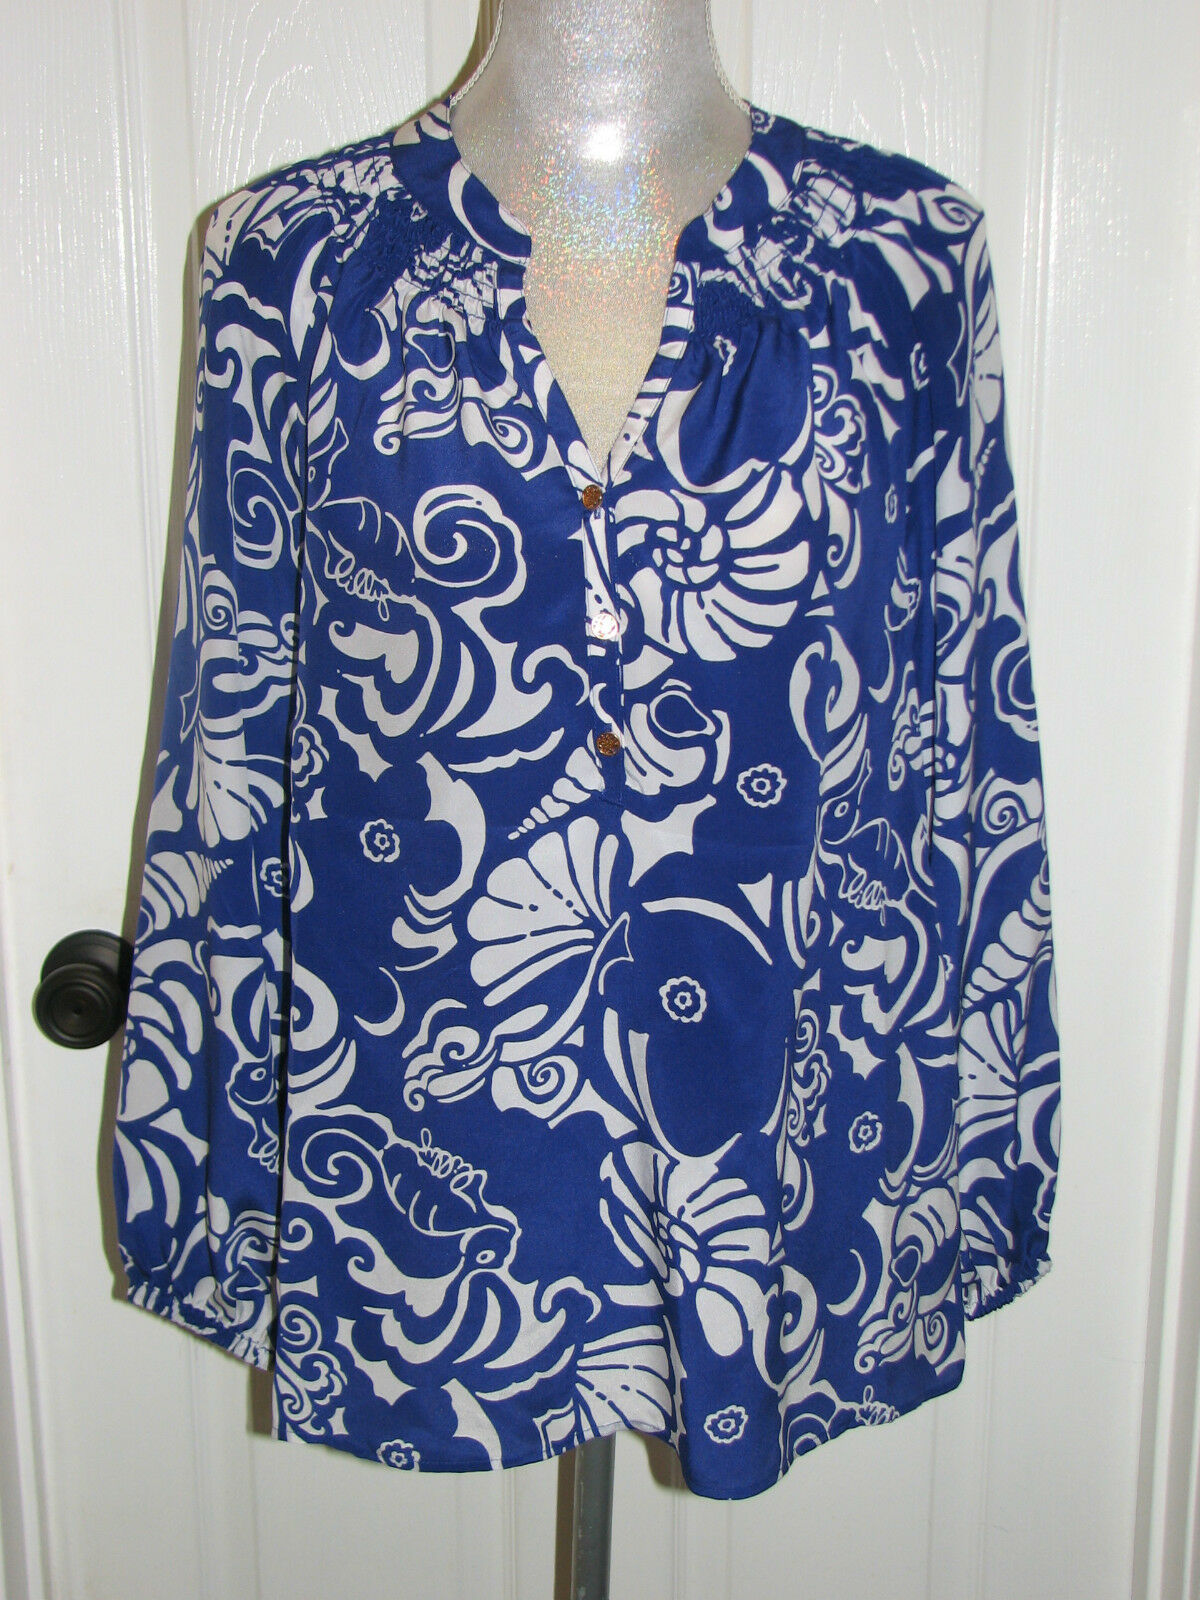 NWT LILLY PULITZER M ELSA SILK BLOUSE SPECTRUM Blau TIDE POOLS